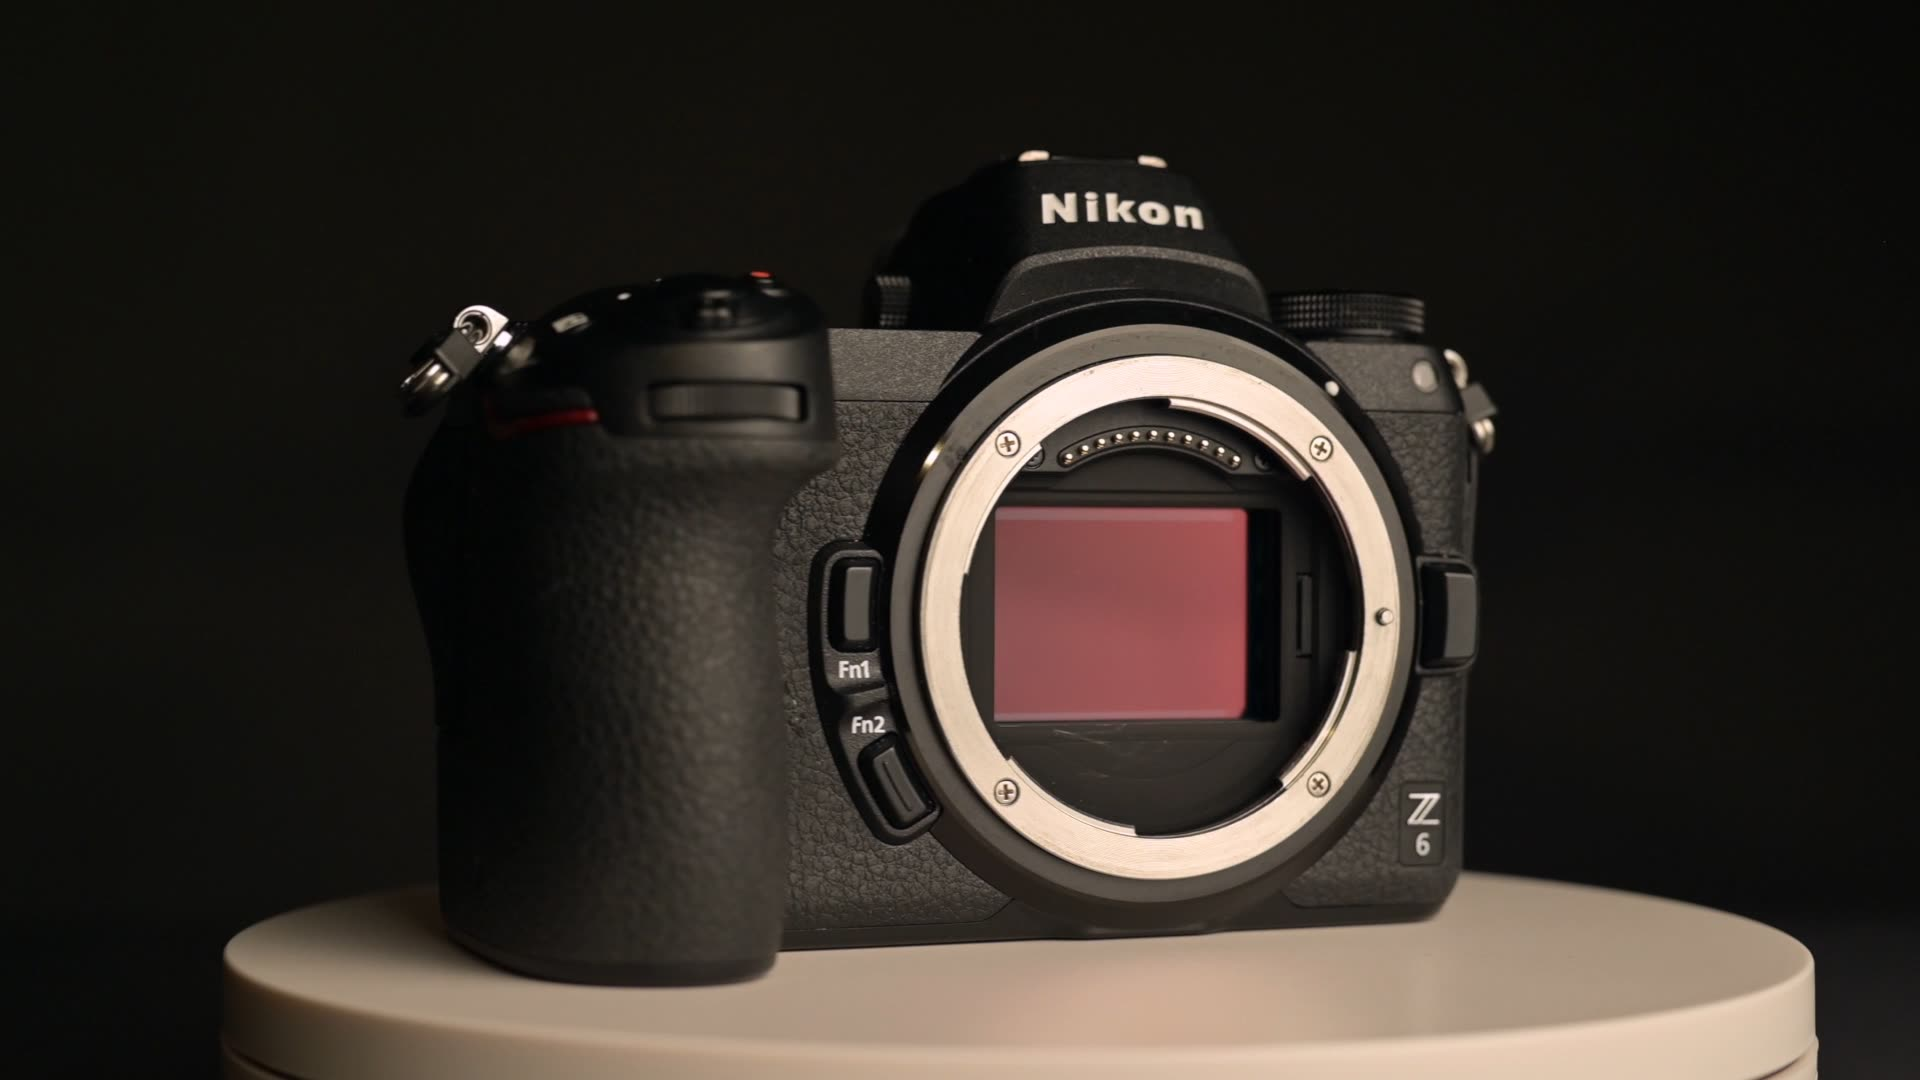 How to Setup the Nikon Z6 Z7 - Recommended settings, tips